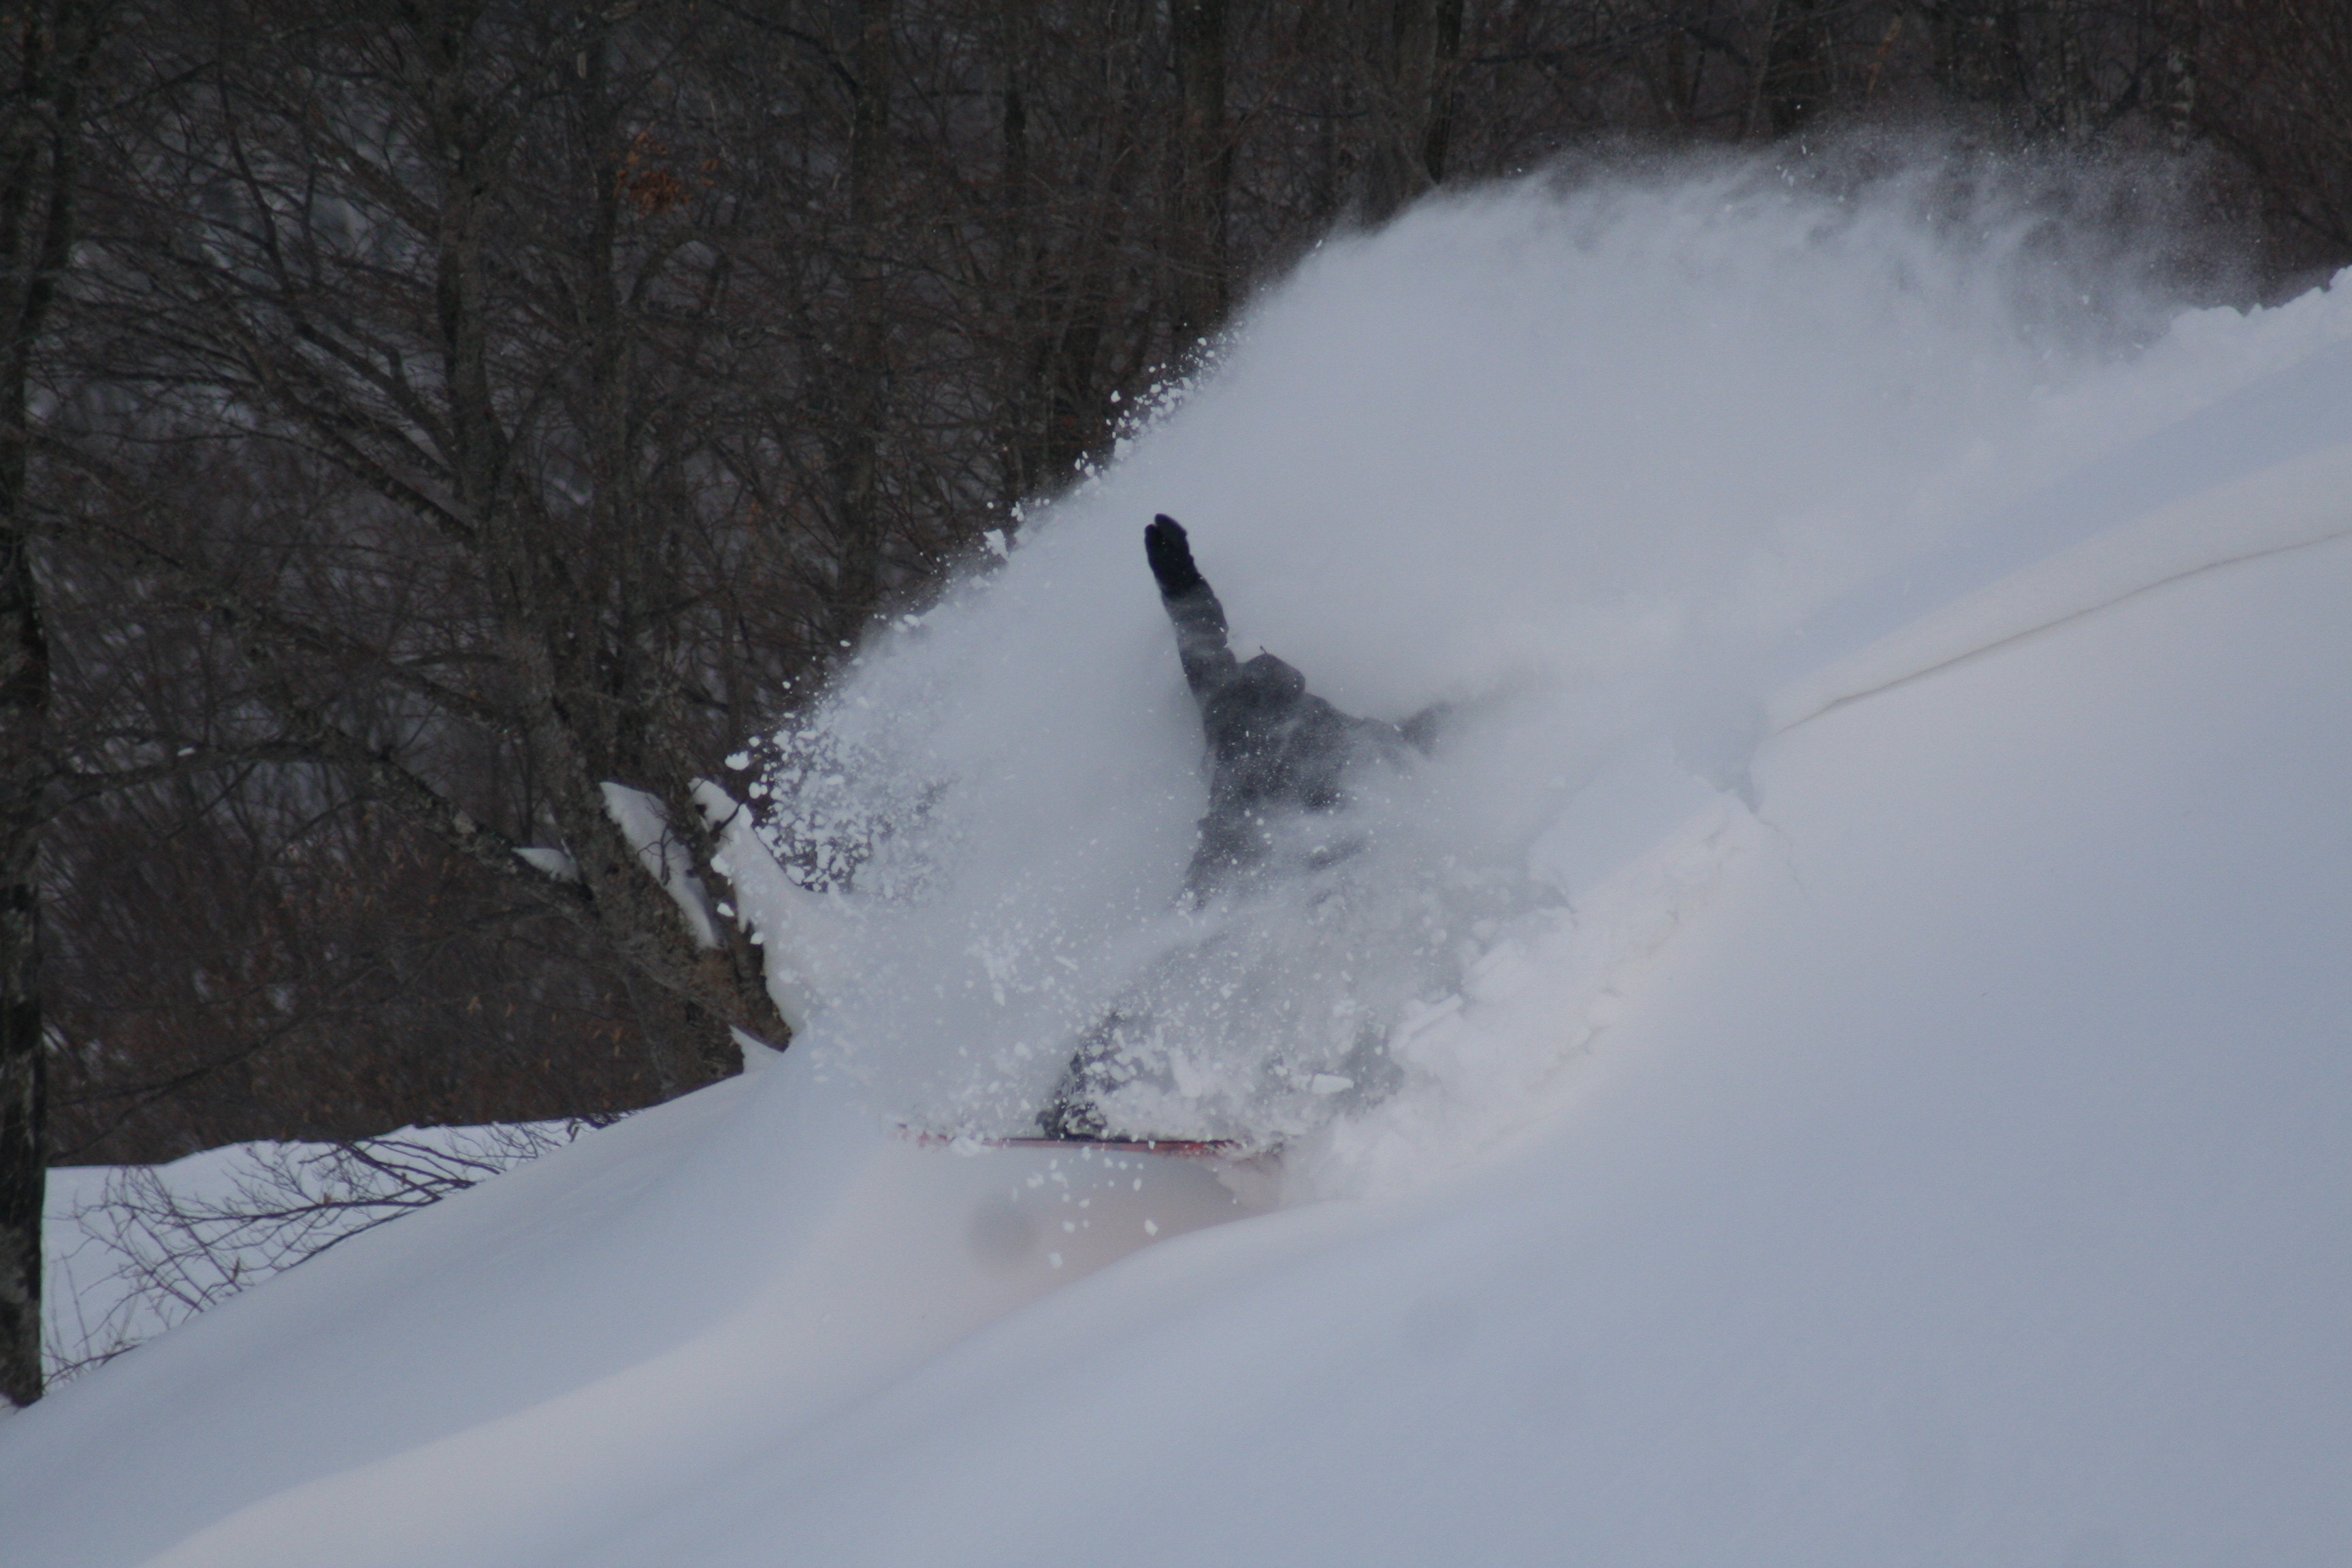 POWDER RUSH!7, Winghills Shirotori Resort